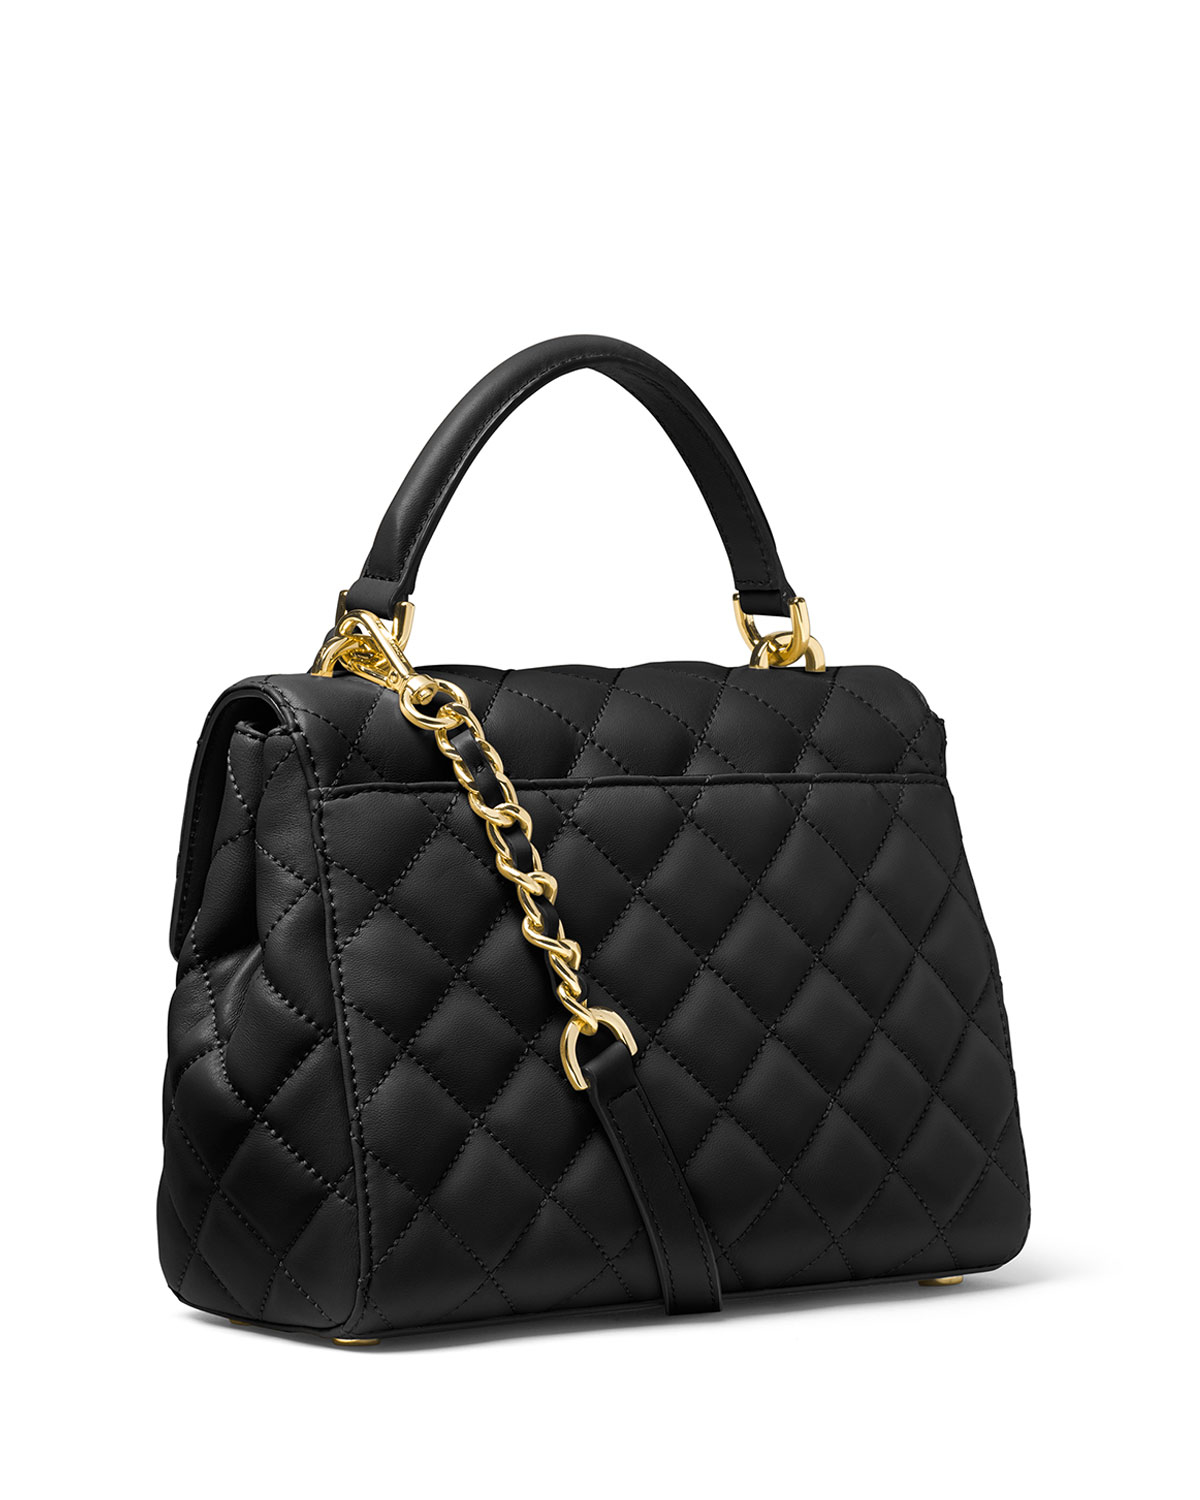 21930836aef1 Michael Kors Black Quilted Leather Bag | Stanford Center for ...